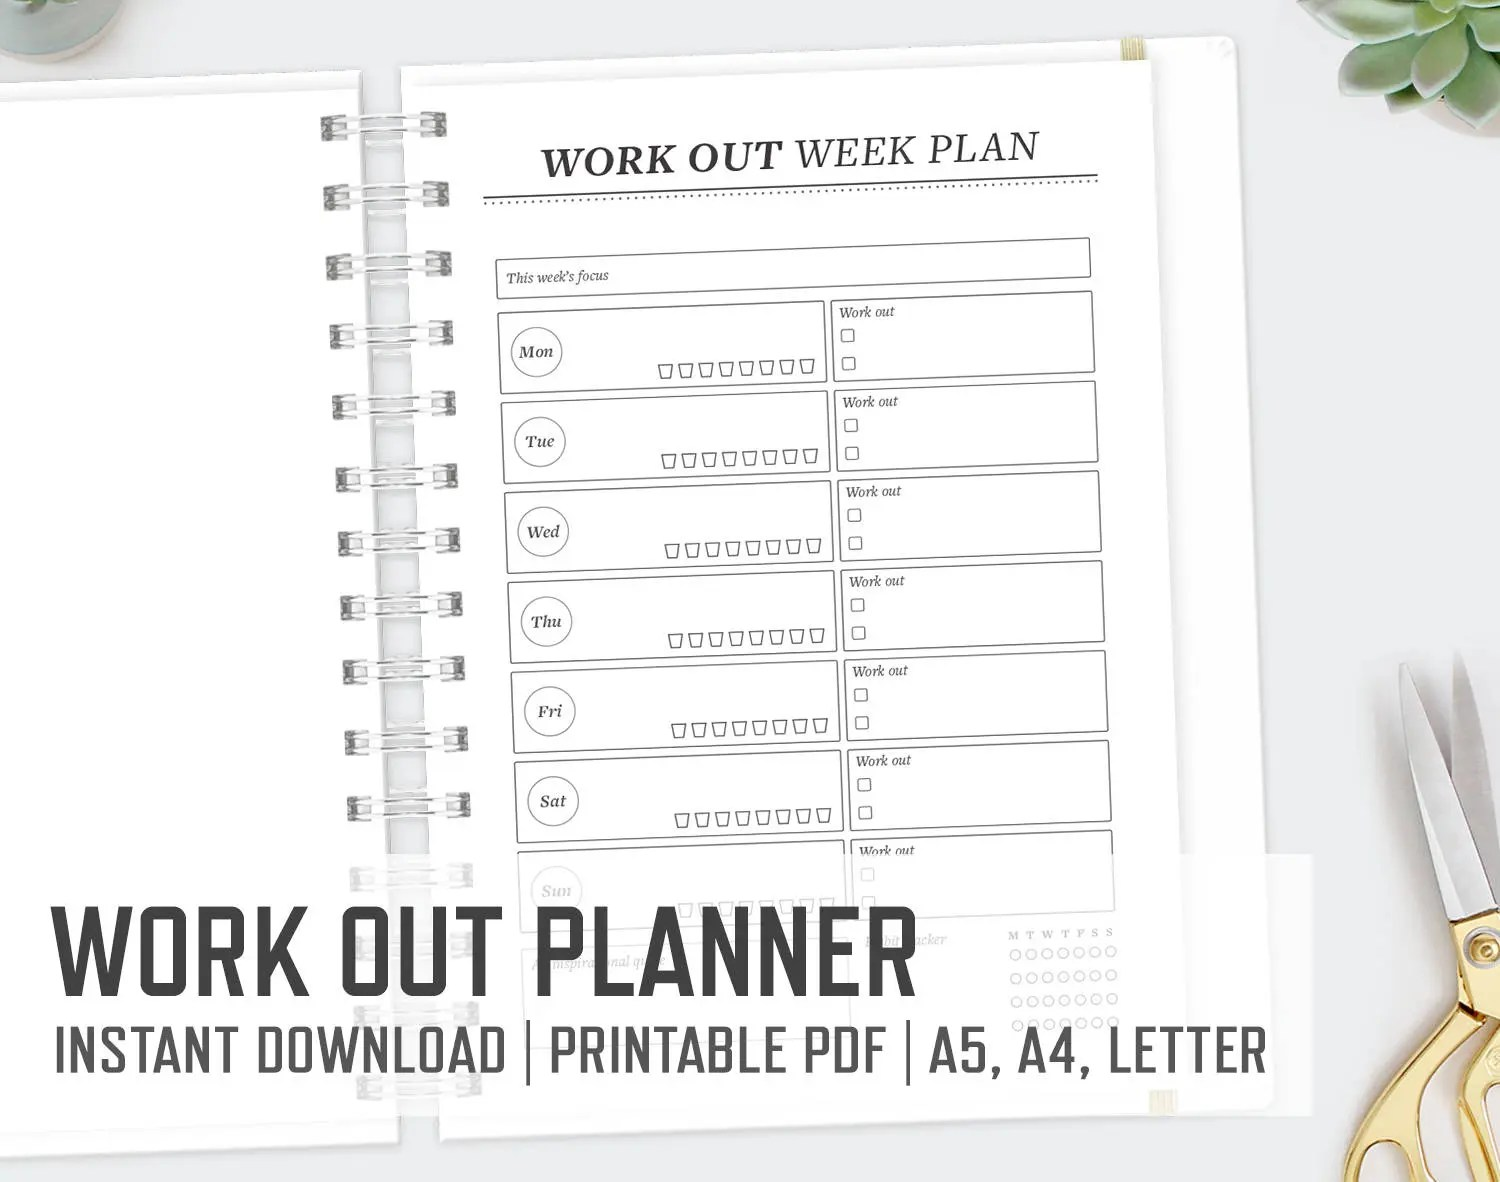 Workout Planner / A4 A5 Letter / Weekly Fitness Planner Cardio Etsy